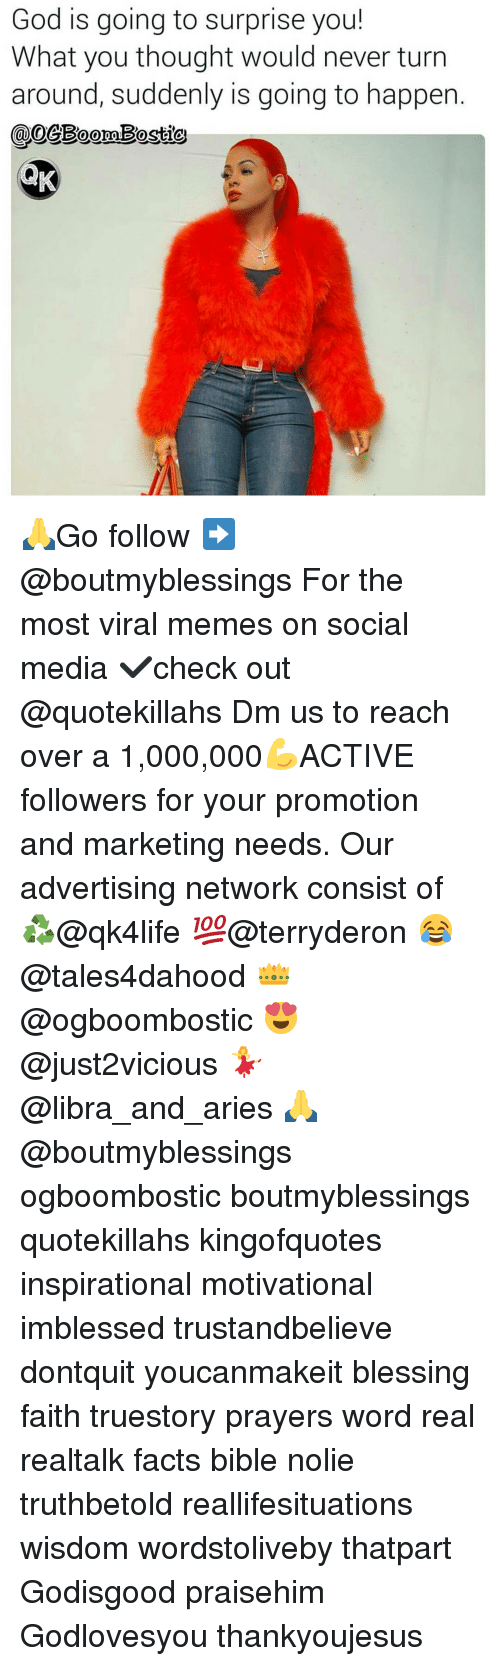 Advertise Network: God is going to surprise you!  What you thought would never turn  around, suddenly is going to happen 🙏Go follow ➡@boutmyblessings For the most viral memes on social media ✔check out @quotekillahs Dm us to reach over a 1,000,000💪ACTIVE followers for your promotion and marketing needs. Our advertising network consist of ♻@qk4life 💯@terryderon 😂@tales4dahood 👑@ogboombostic 😍@just2vicious 💃@libra_and_aries 🙏@boutmyblessings ogboombostic boutmyblessings quotekillahs kingofquotes inspirational motivational imblessed trustandbelieve dontquit youcanmakeit blessing faith truestory prayers word real realtalk facts bible nolie truthbetold reallifesituations wisdom wordstoliveby thatpart Godisgood praisehim Godlovesyou thankyoujesus